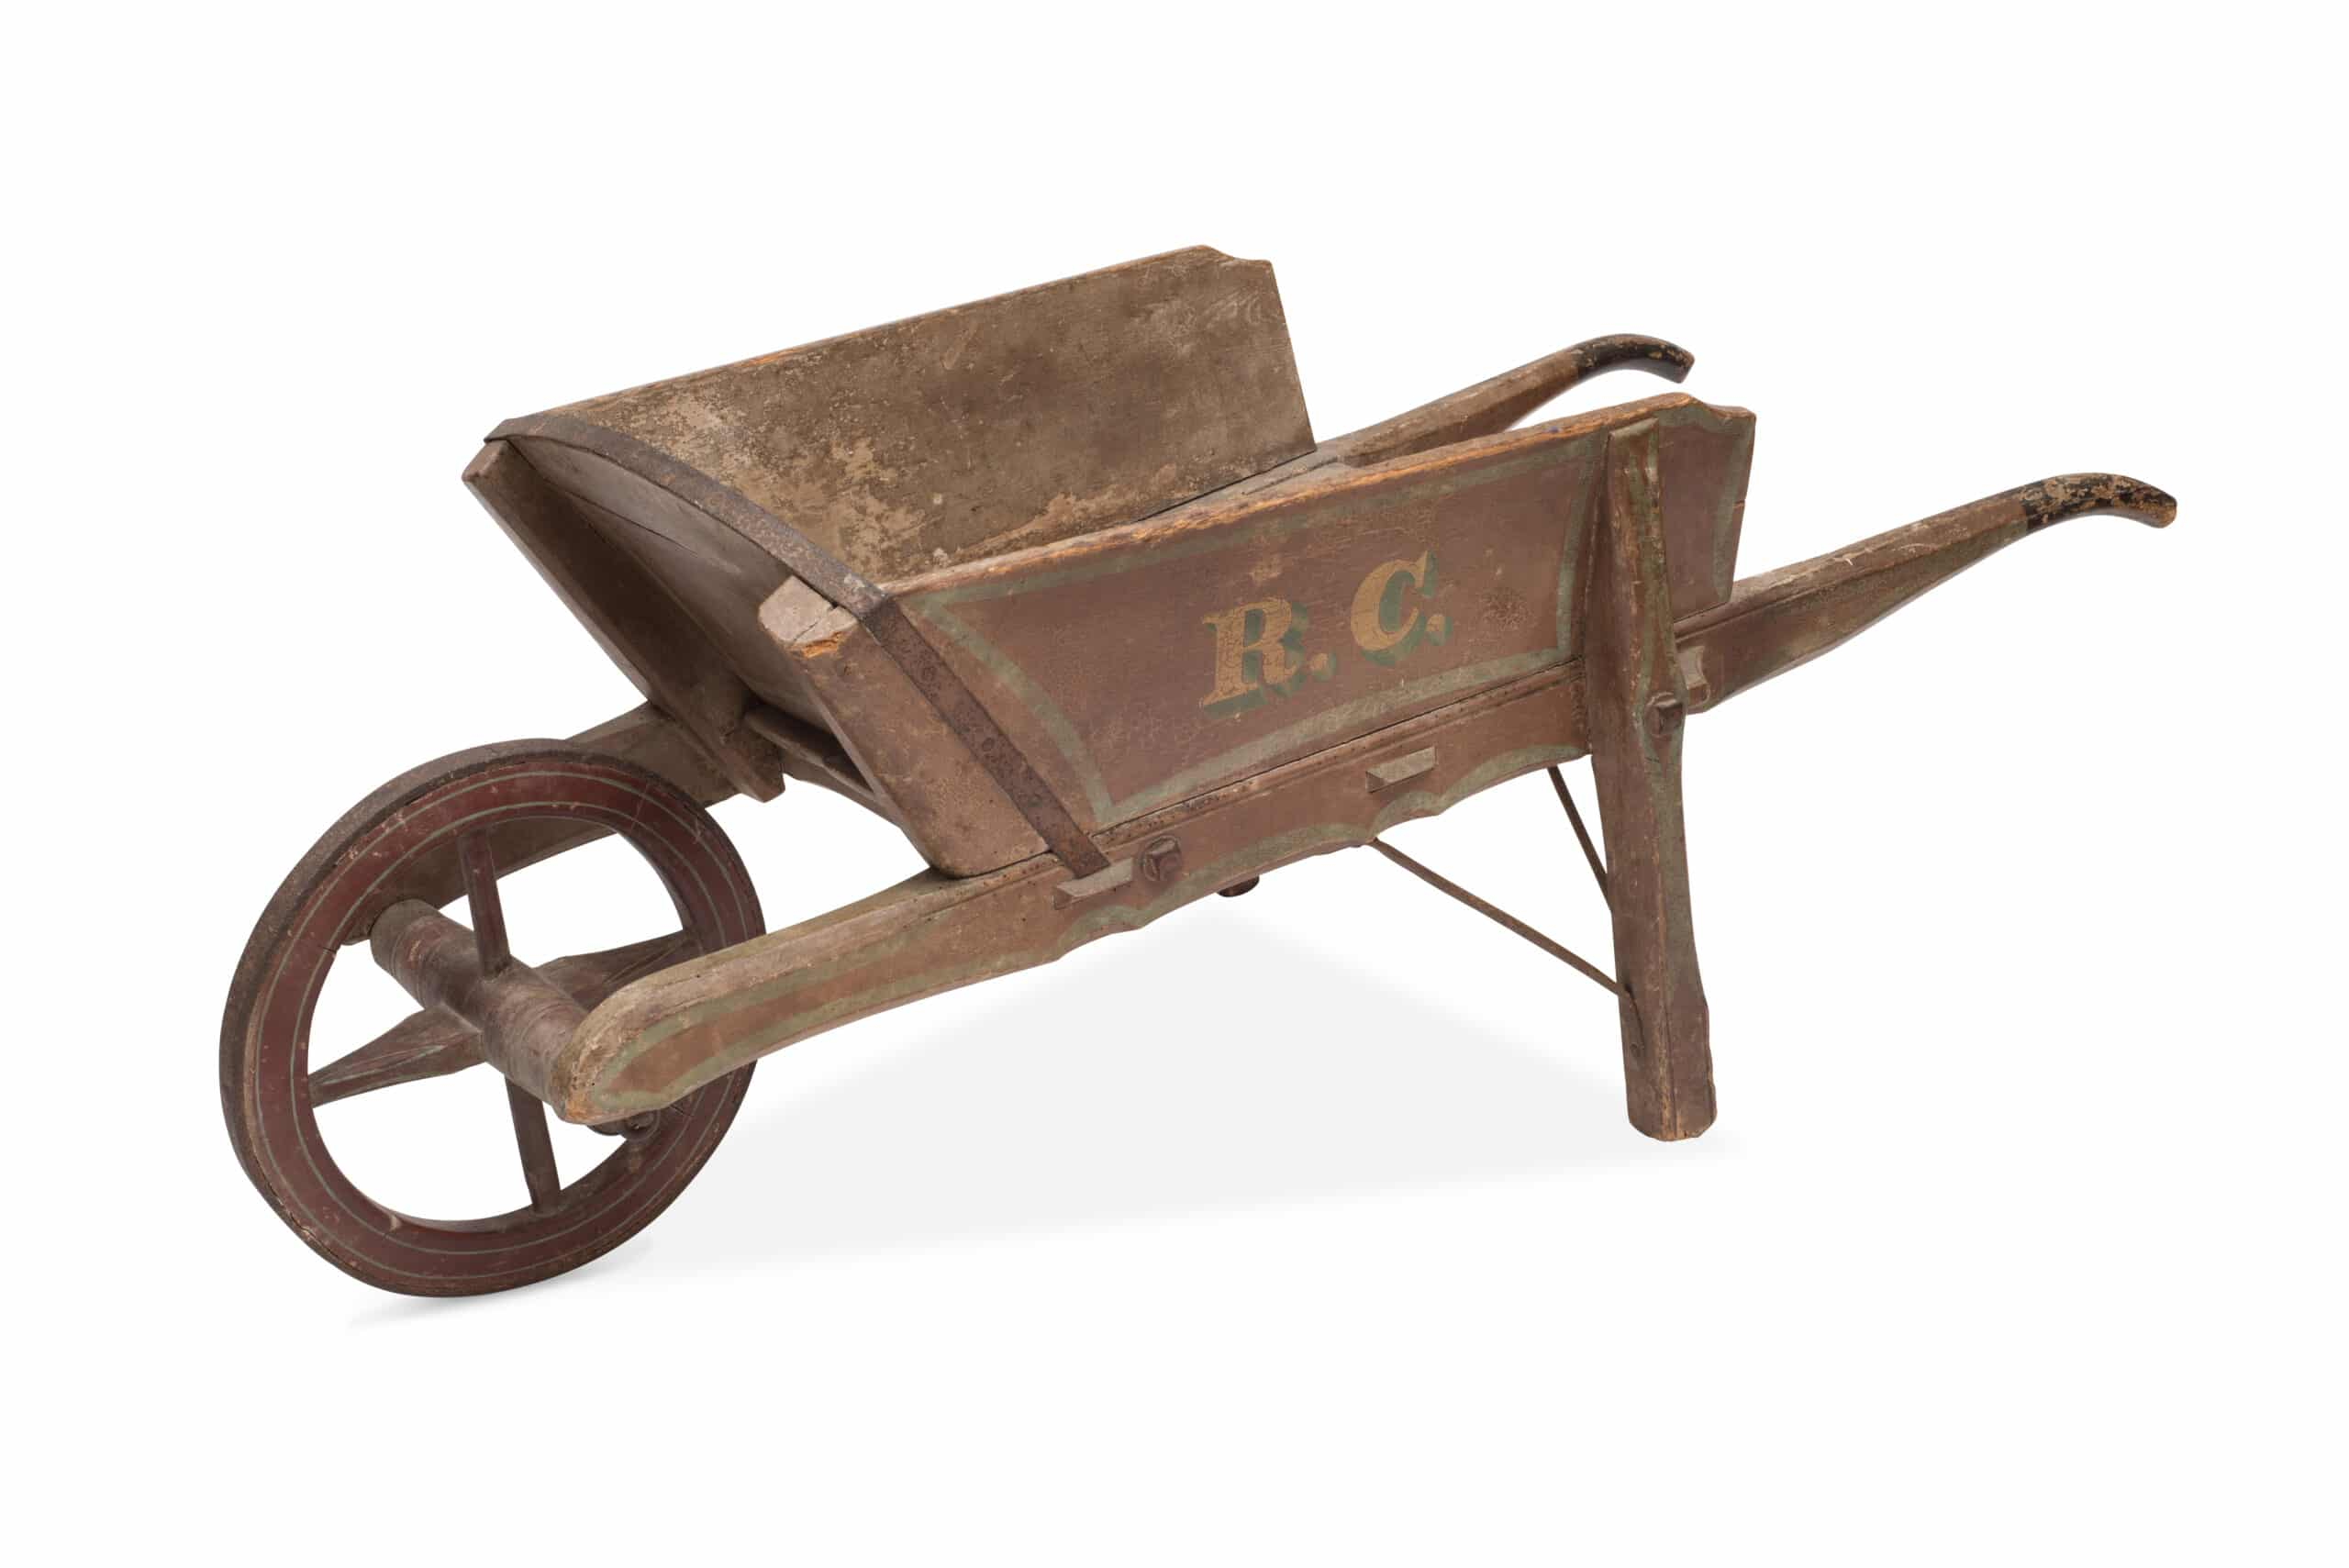 Cut-out of an antique wooden wheelbarrow.